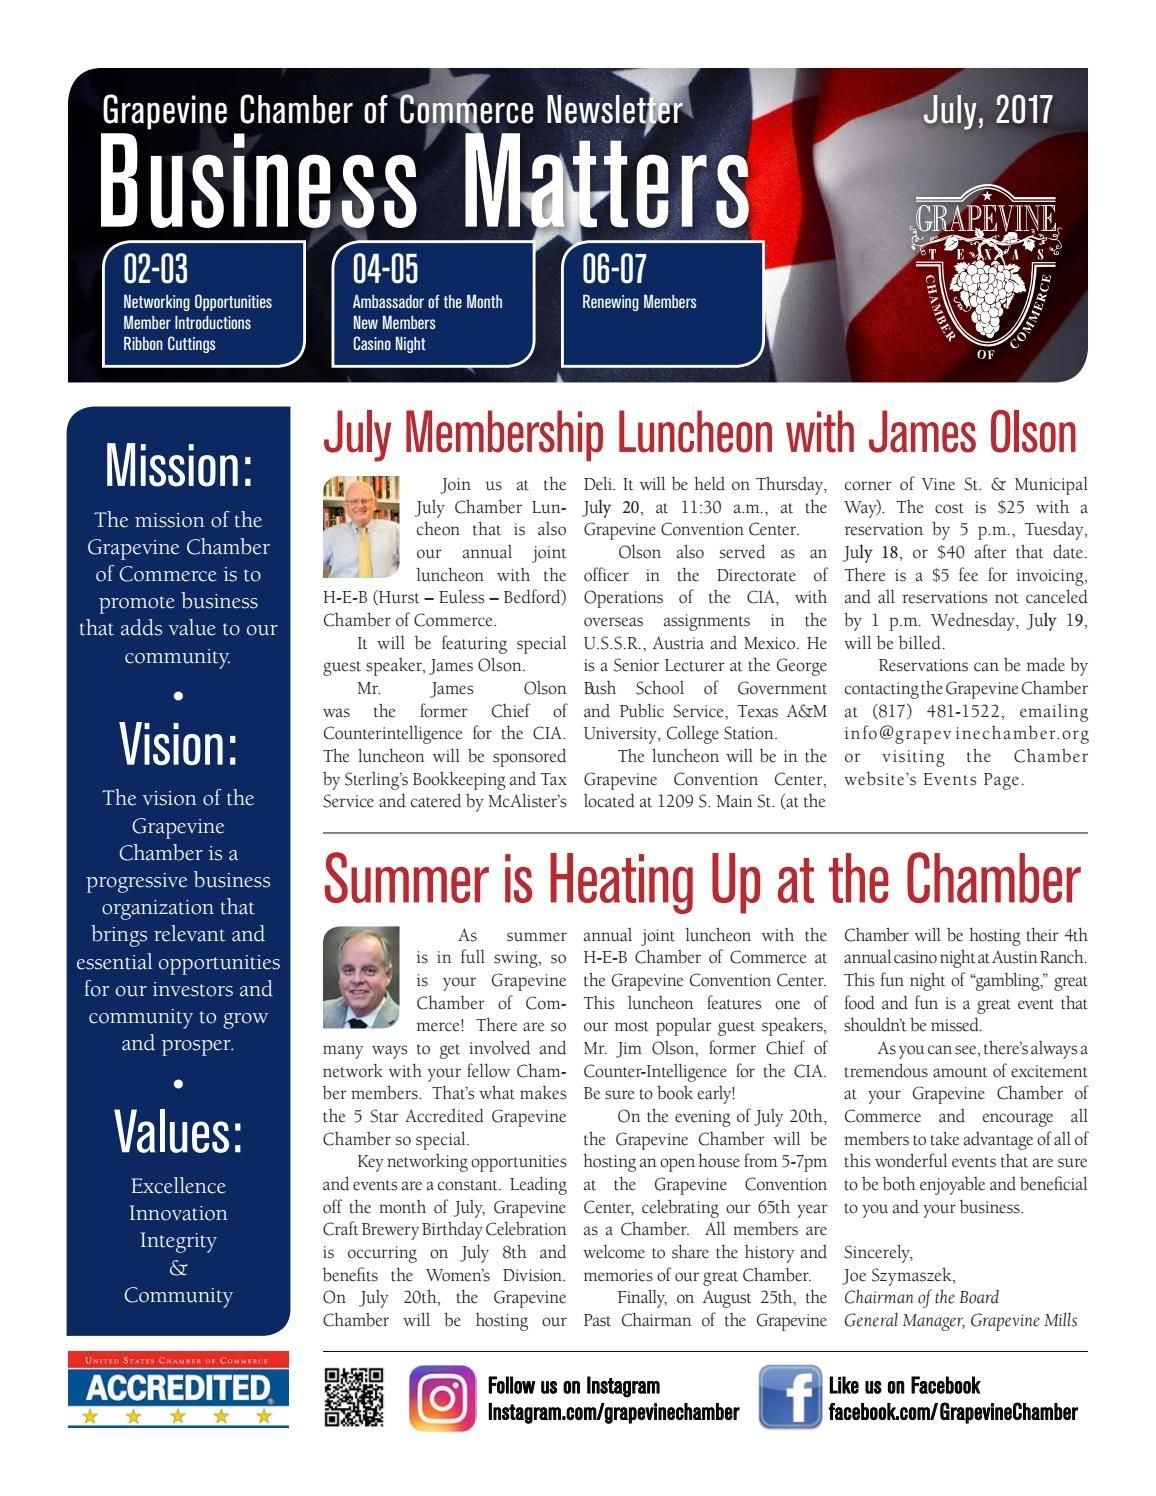 Grapevine Chamber Business Matters Newsletter July 2017 By